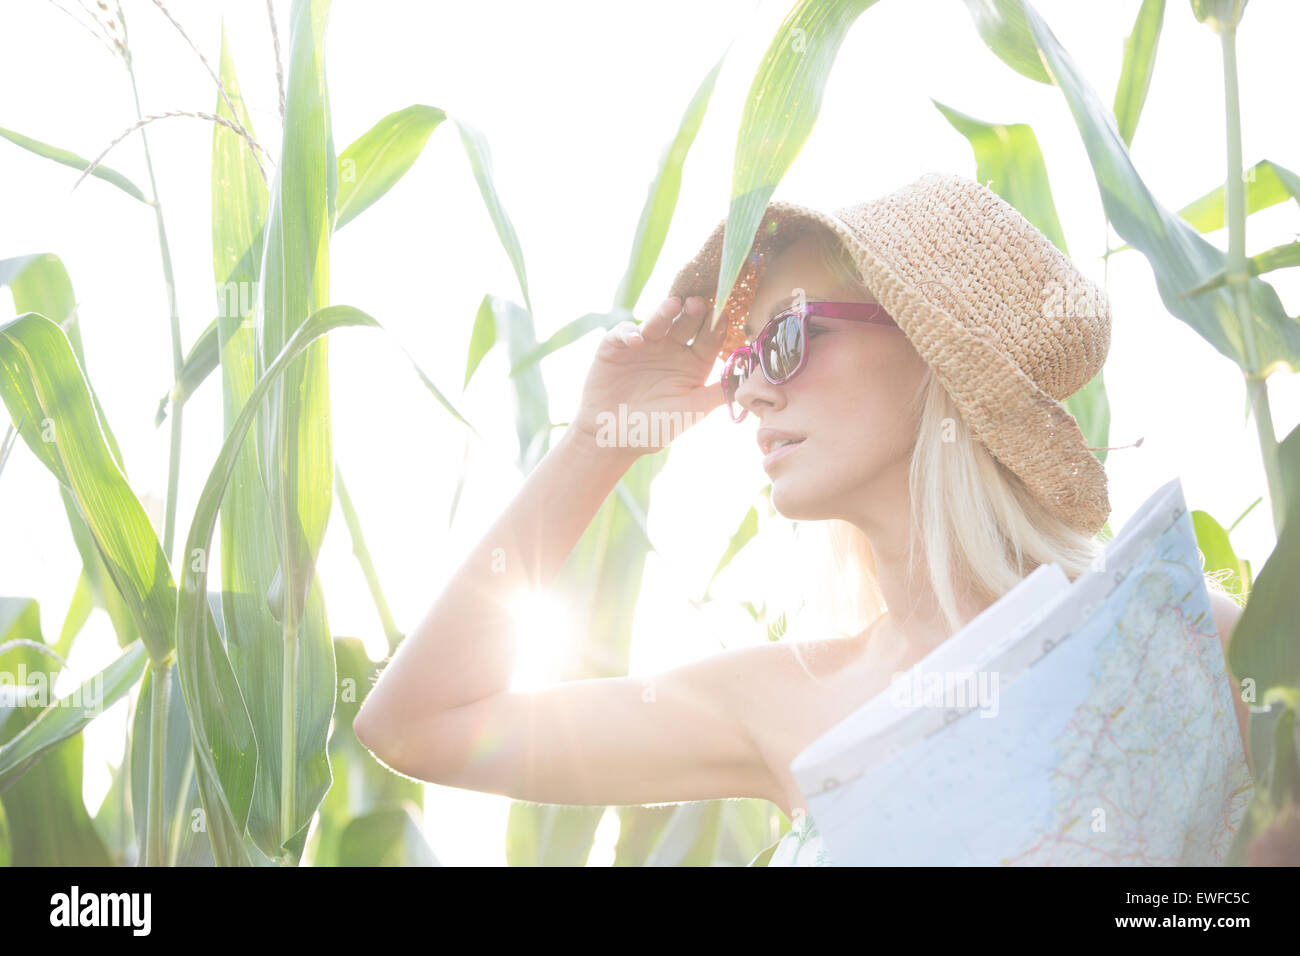 Woman looking away while holding map amidst plants on sunny day - Stock Image